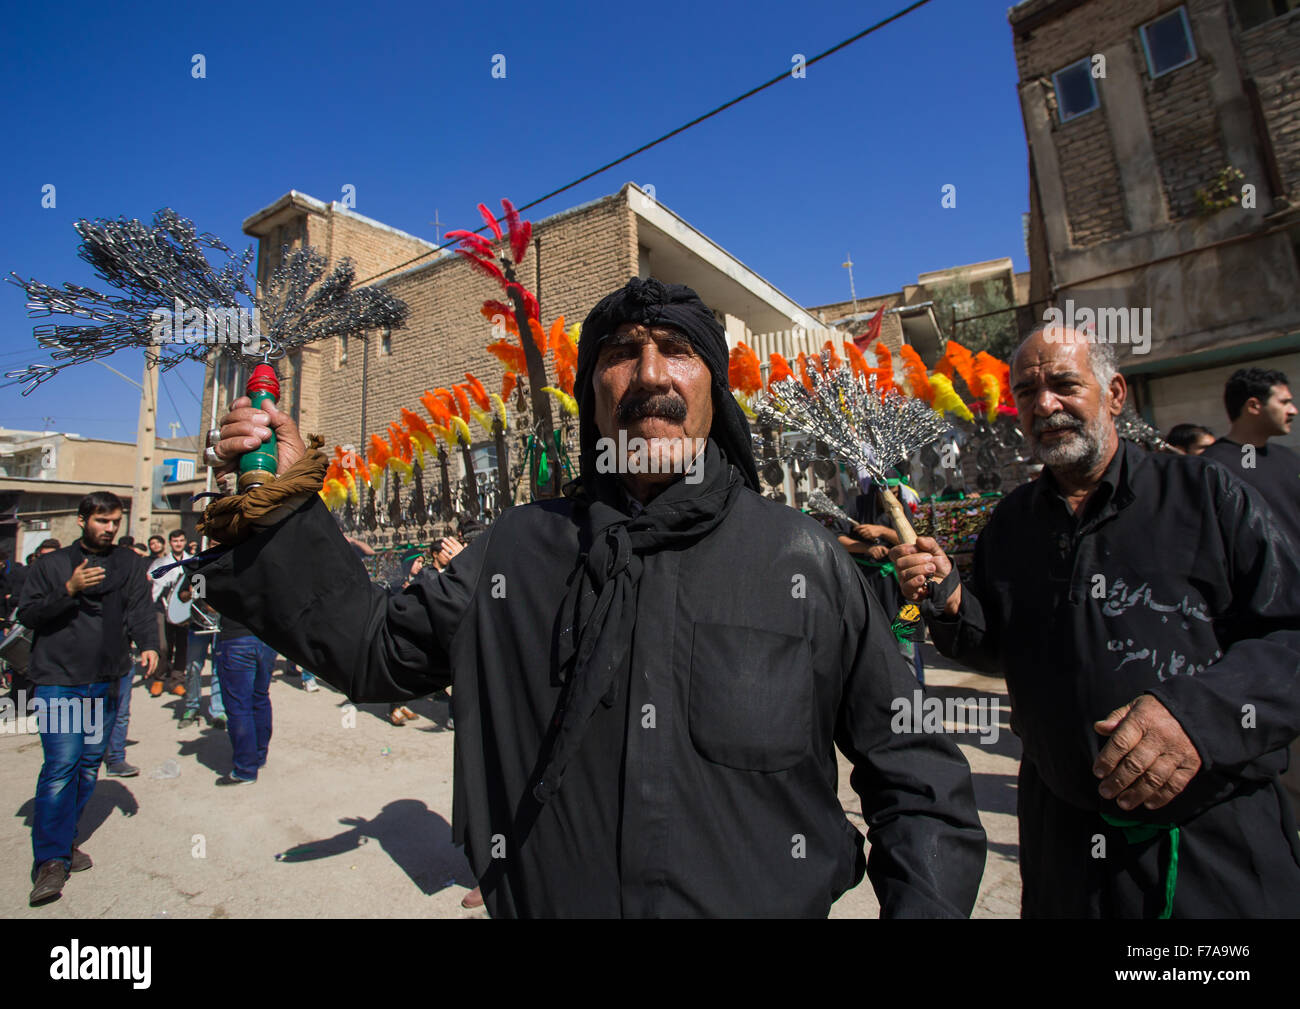 Iranian Shiite Muslim Men Beating Themselves With Chains In Front Of An Alam On Tasua Celebration, Lorestan Province, - Stock Image